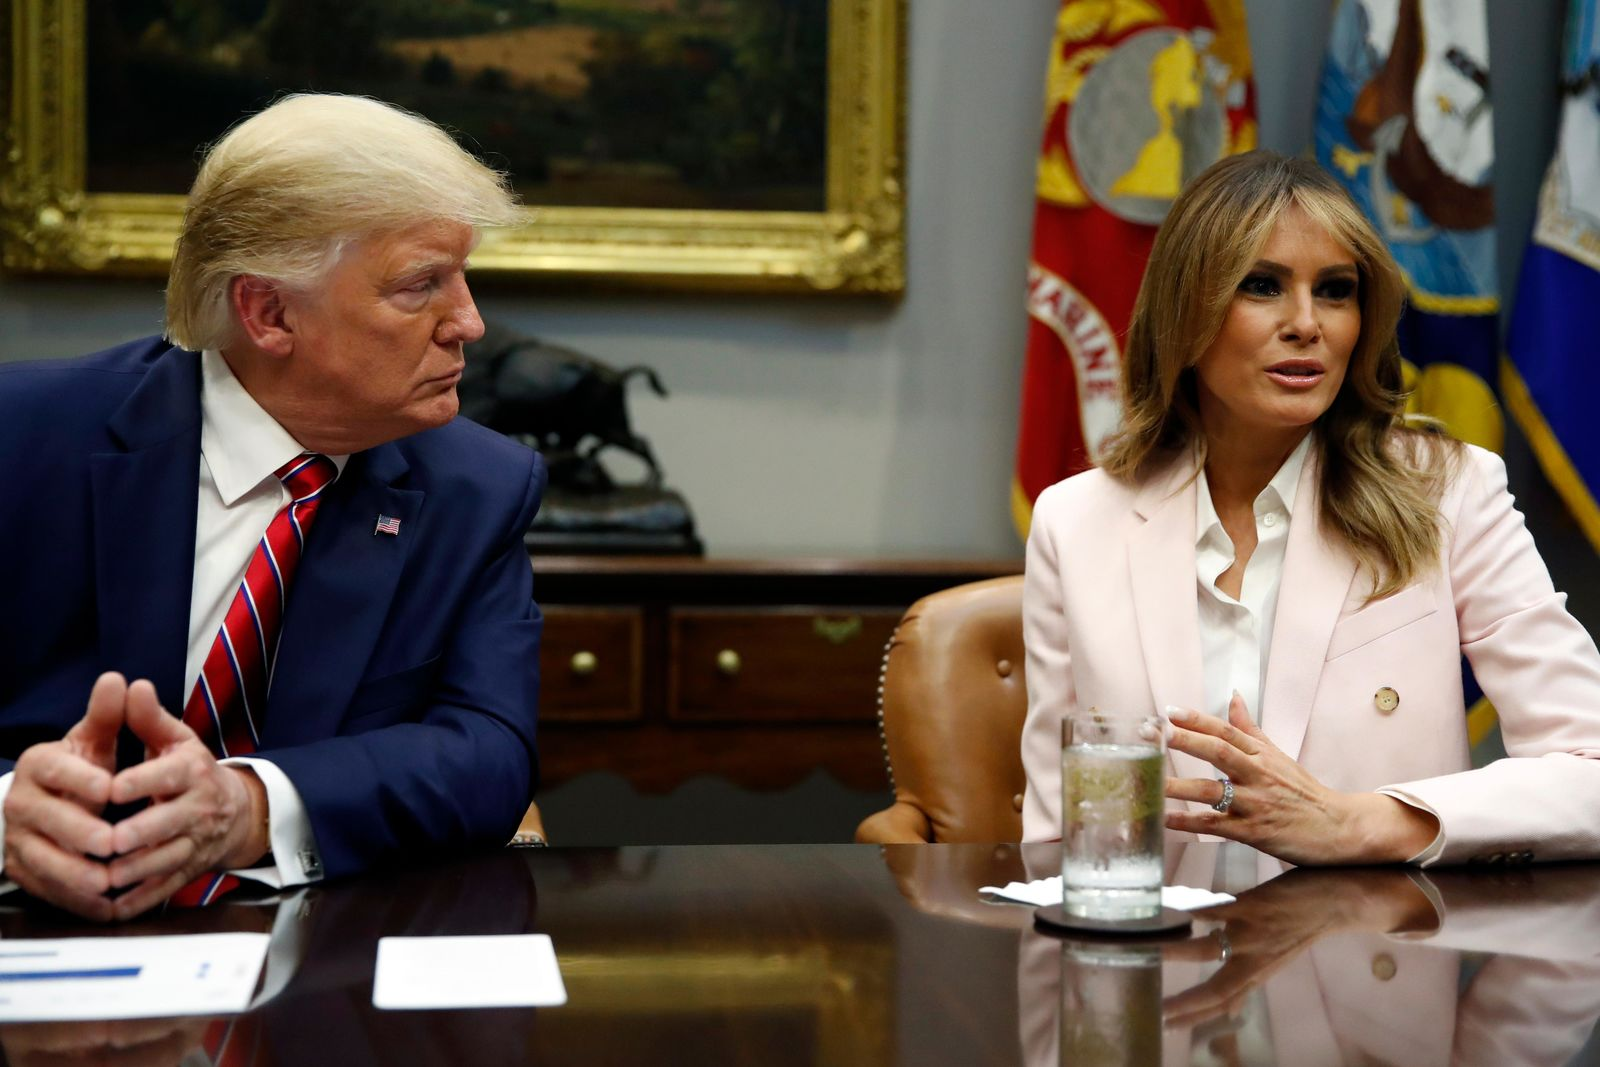 President Donald Trump listens as first lady Melania Trump speaks during a briefing on efforts to combat the opioid crisis in the Roosevelt Room of the White House, Wednesday, June 12, 2019, in Washington. (AP Photo/Alex Brandon)